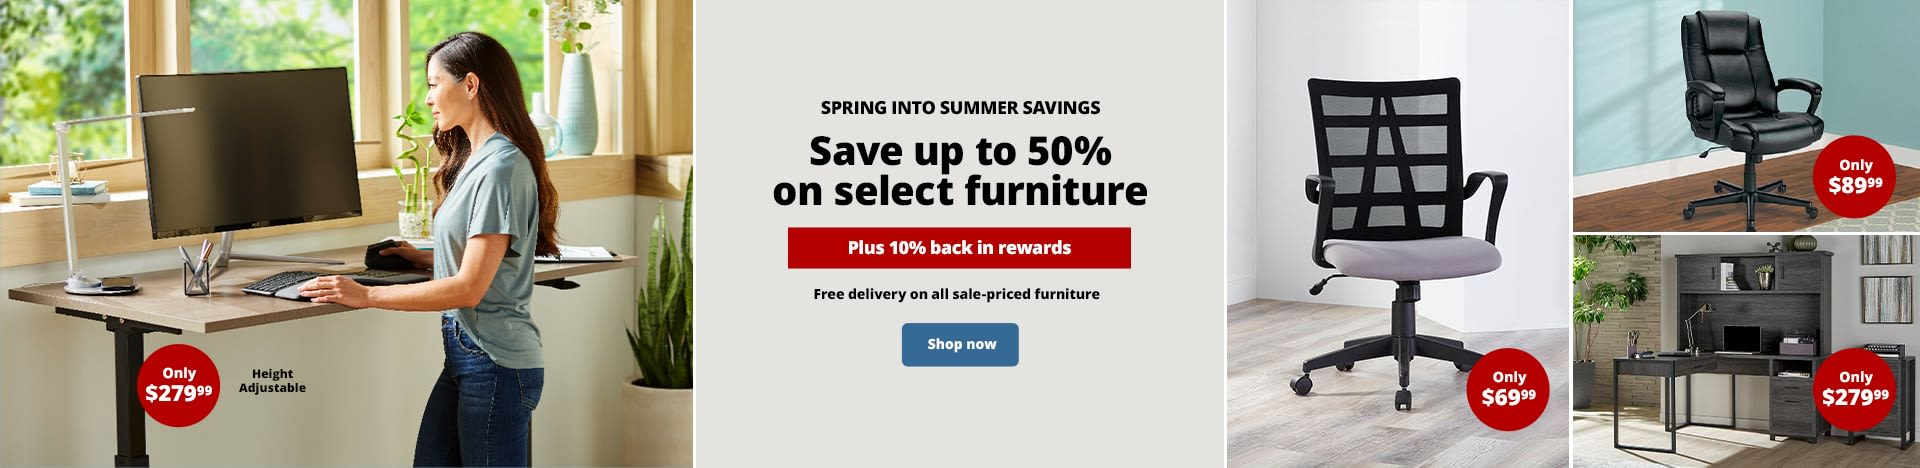 Save up to 50% on select furniture. Plus 10% back in rewards. Free delivery on all sale-priced furniture